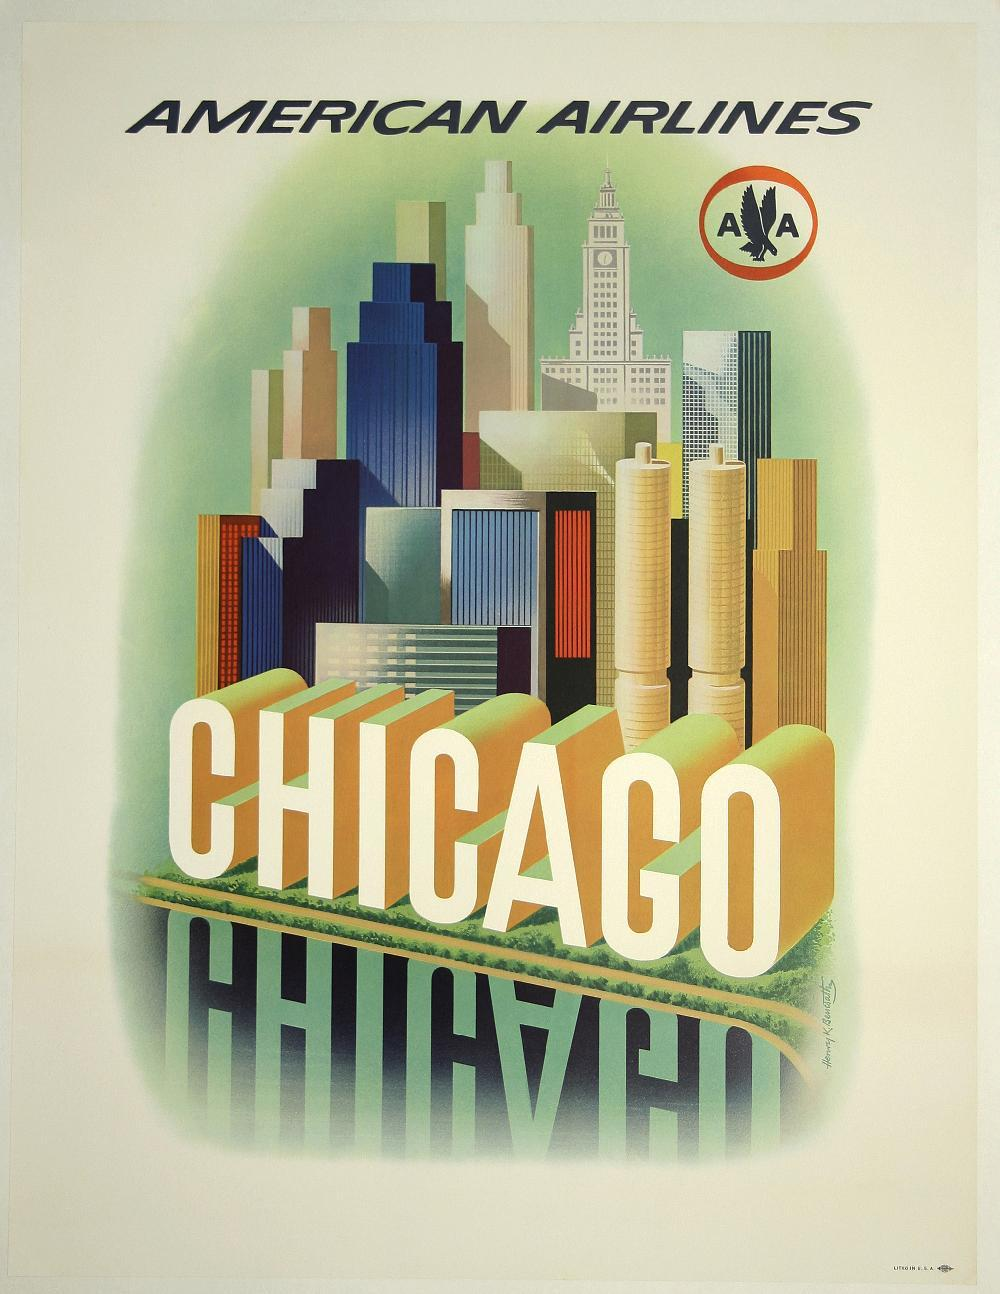 1959 travel poster by Henry K. Bencsath